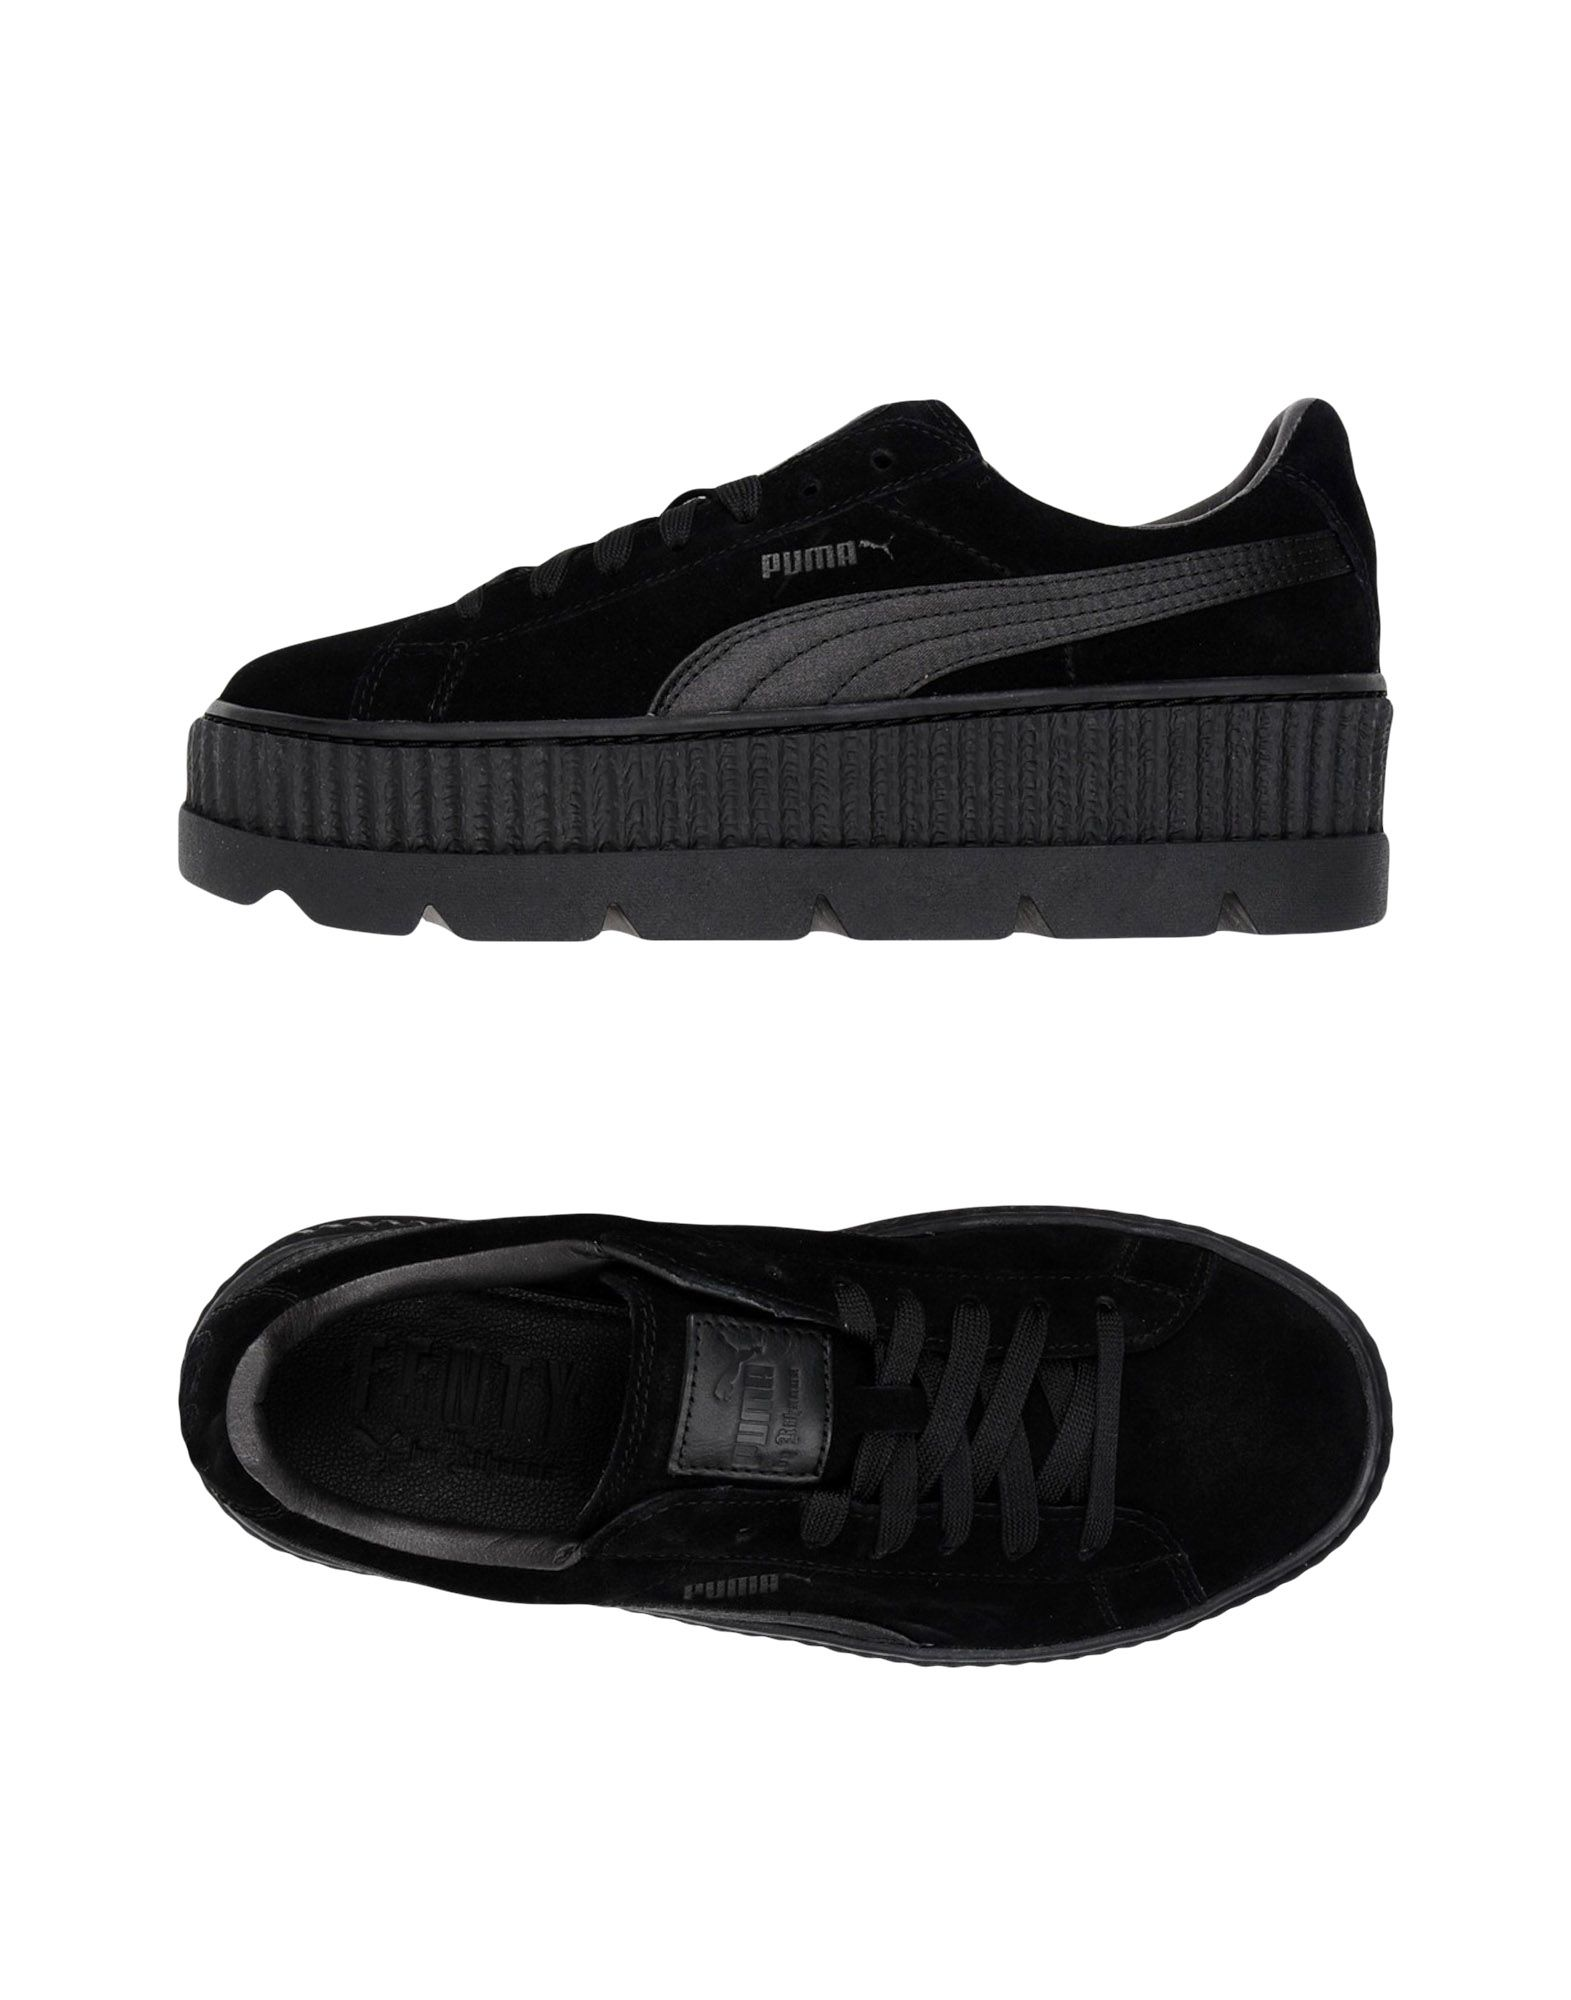 Fenty Puma By Rihanna Cleated Creeper Suede Wn's Sneakers